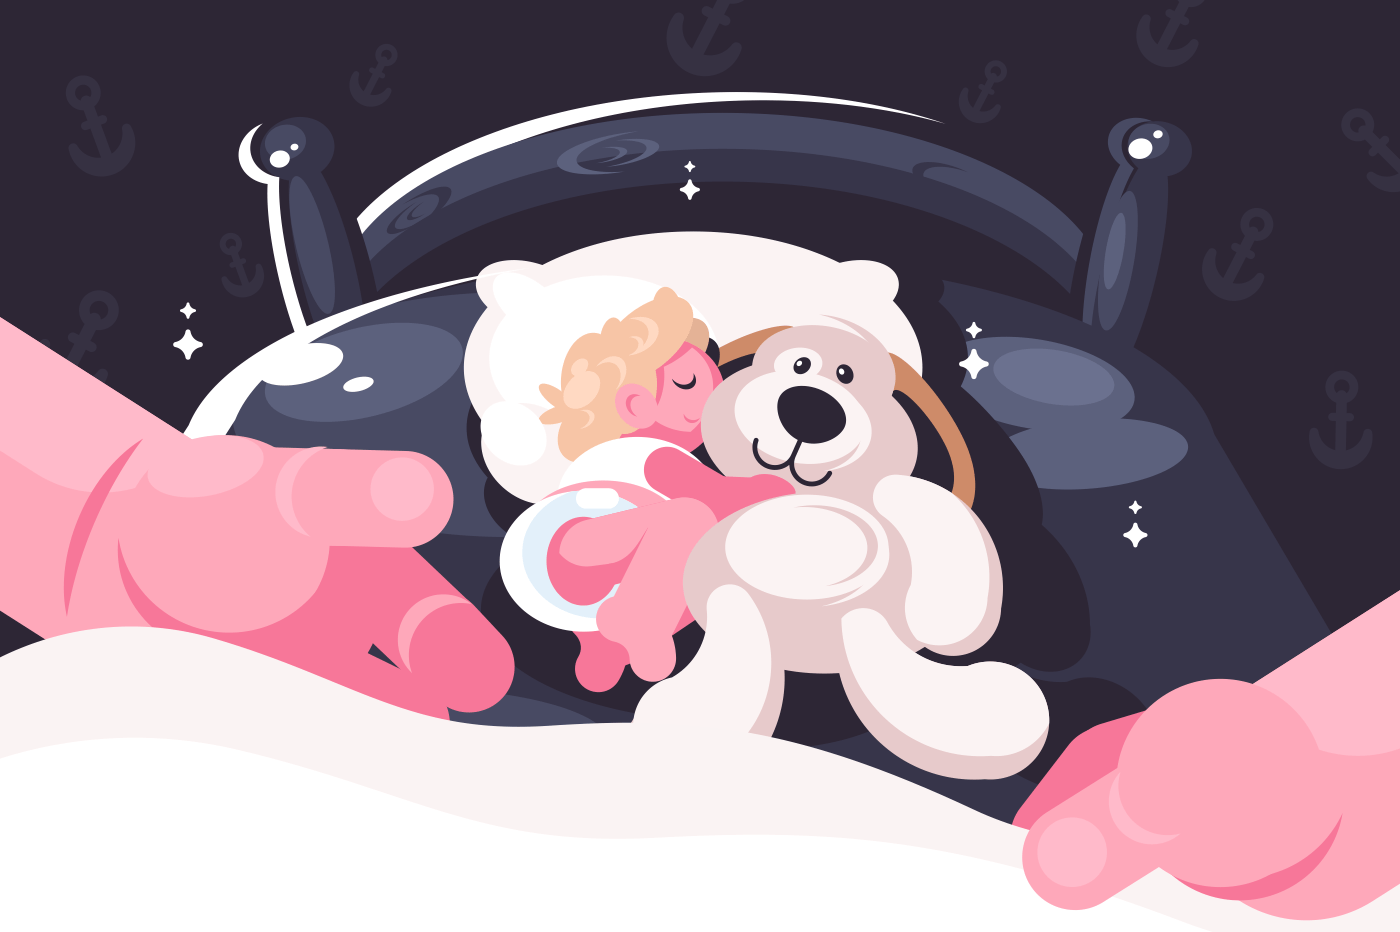 Baby sleeping in crib with toy teddy bear. Hands covering little children. Flat. Vector illustration.